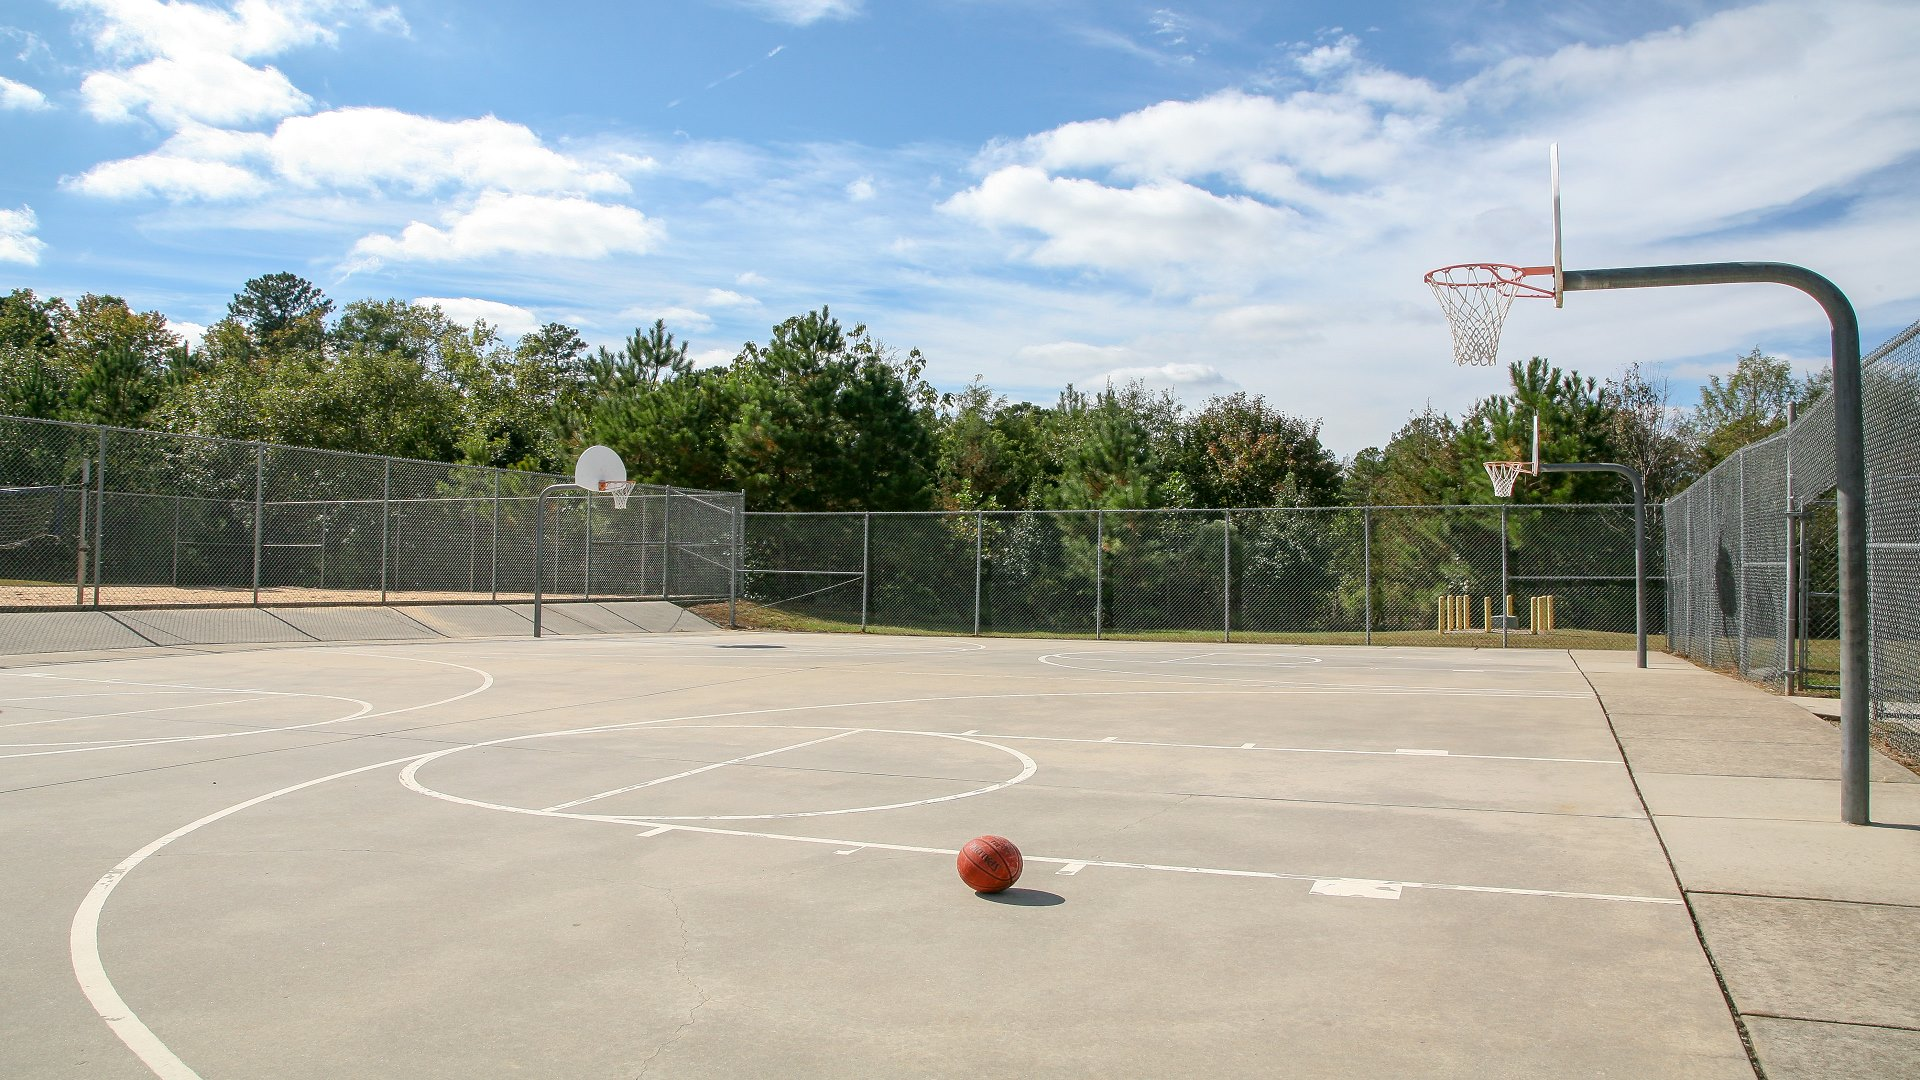 Outdoor basketball court with two hoops at Honeycutt Park